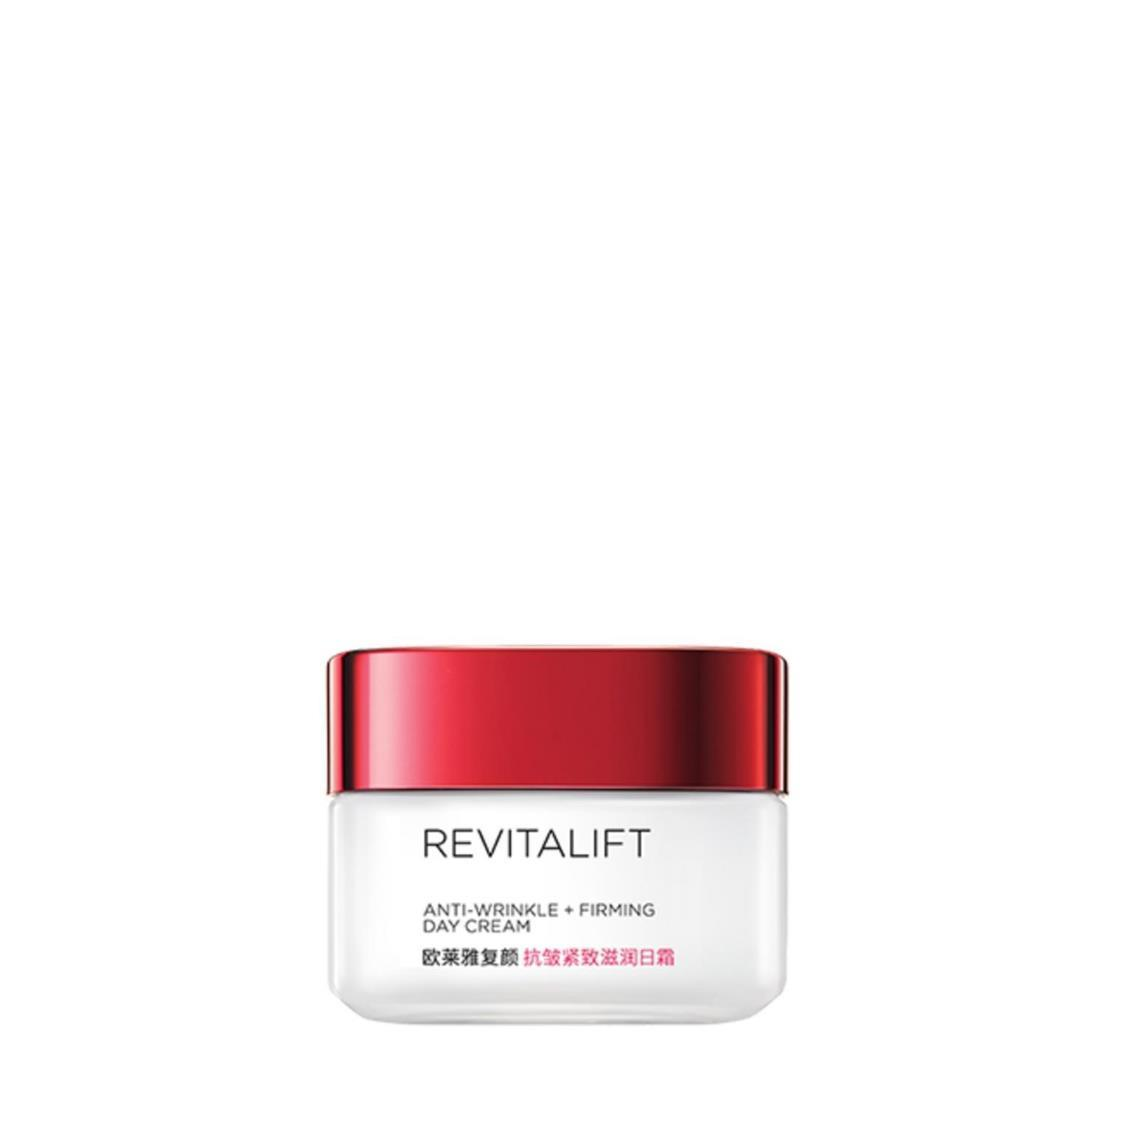 Revitalift Day Cream no SPF 50ml